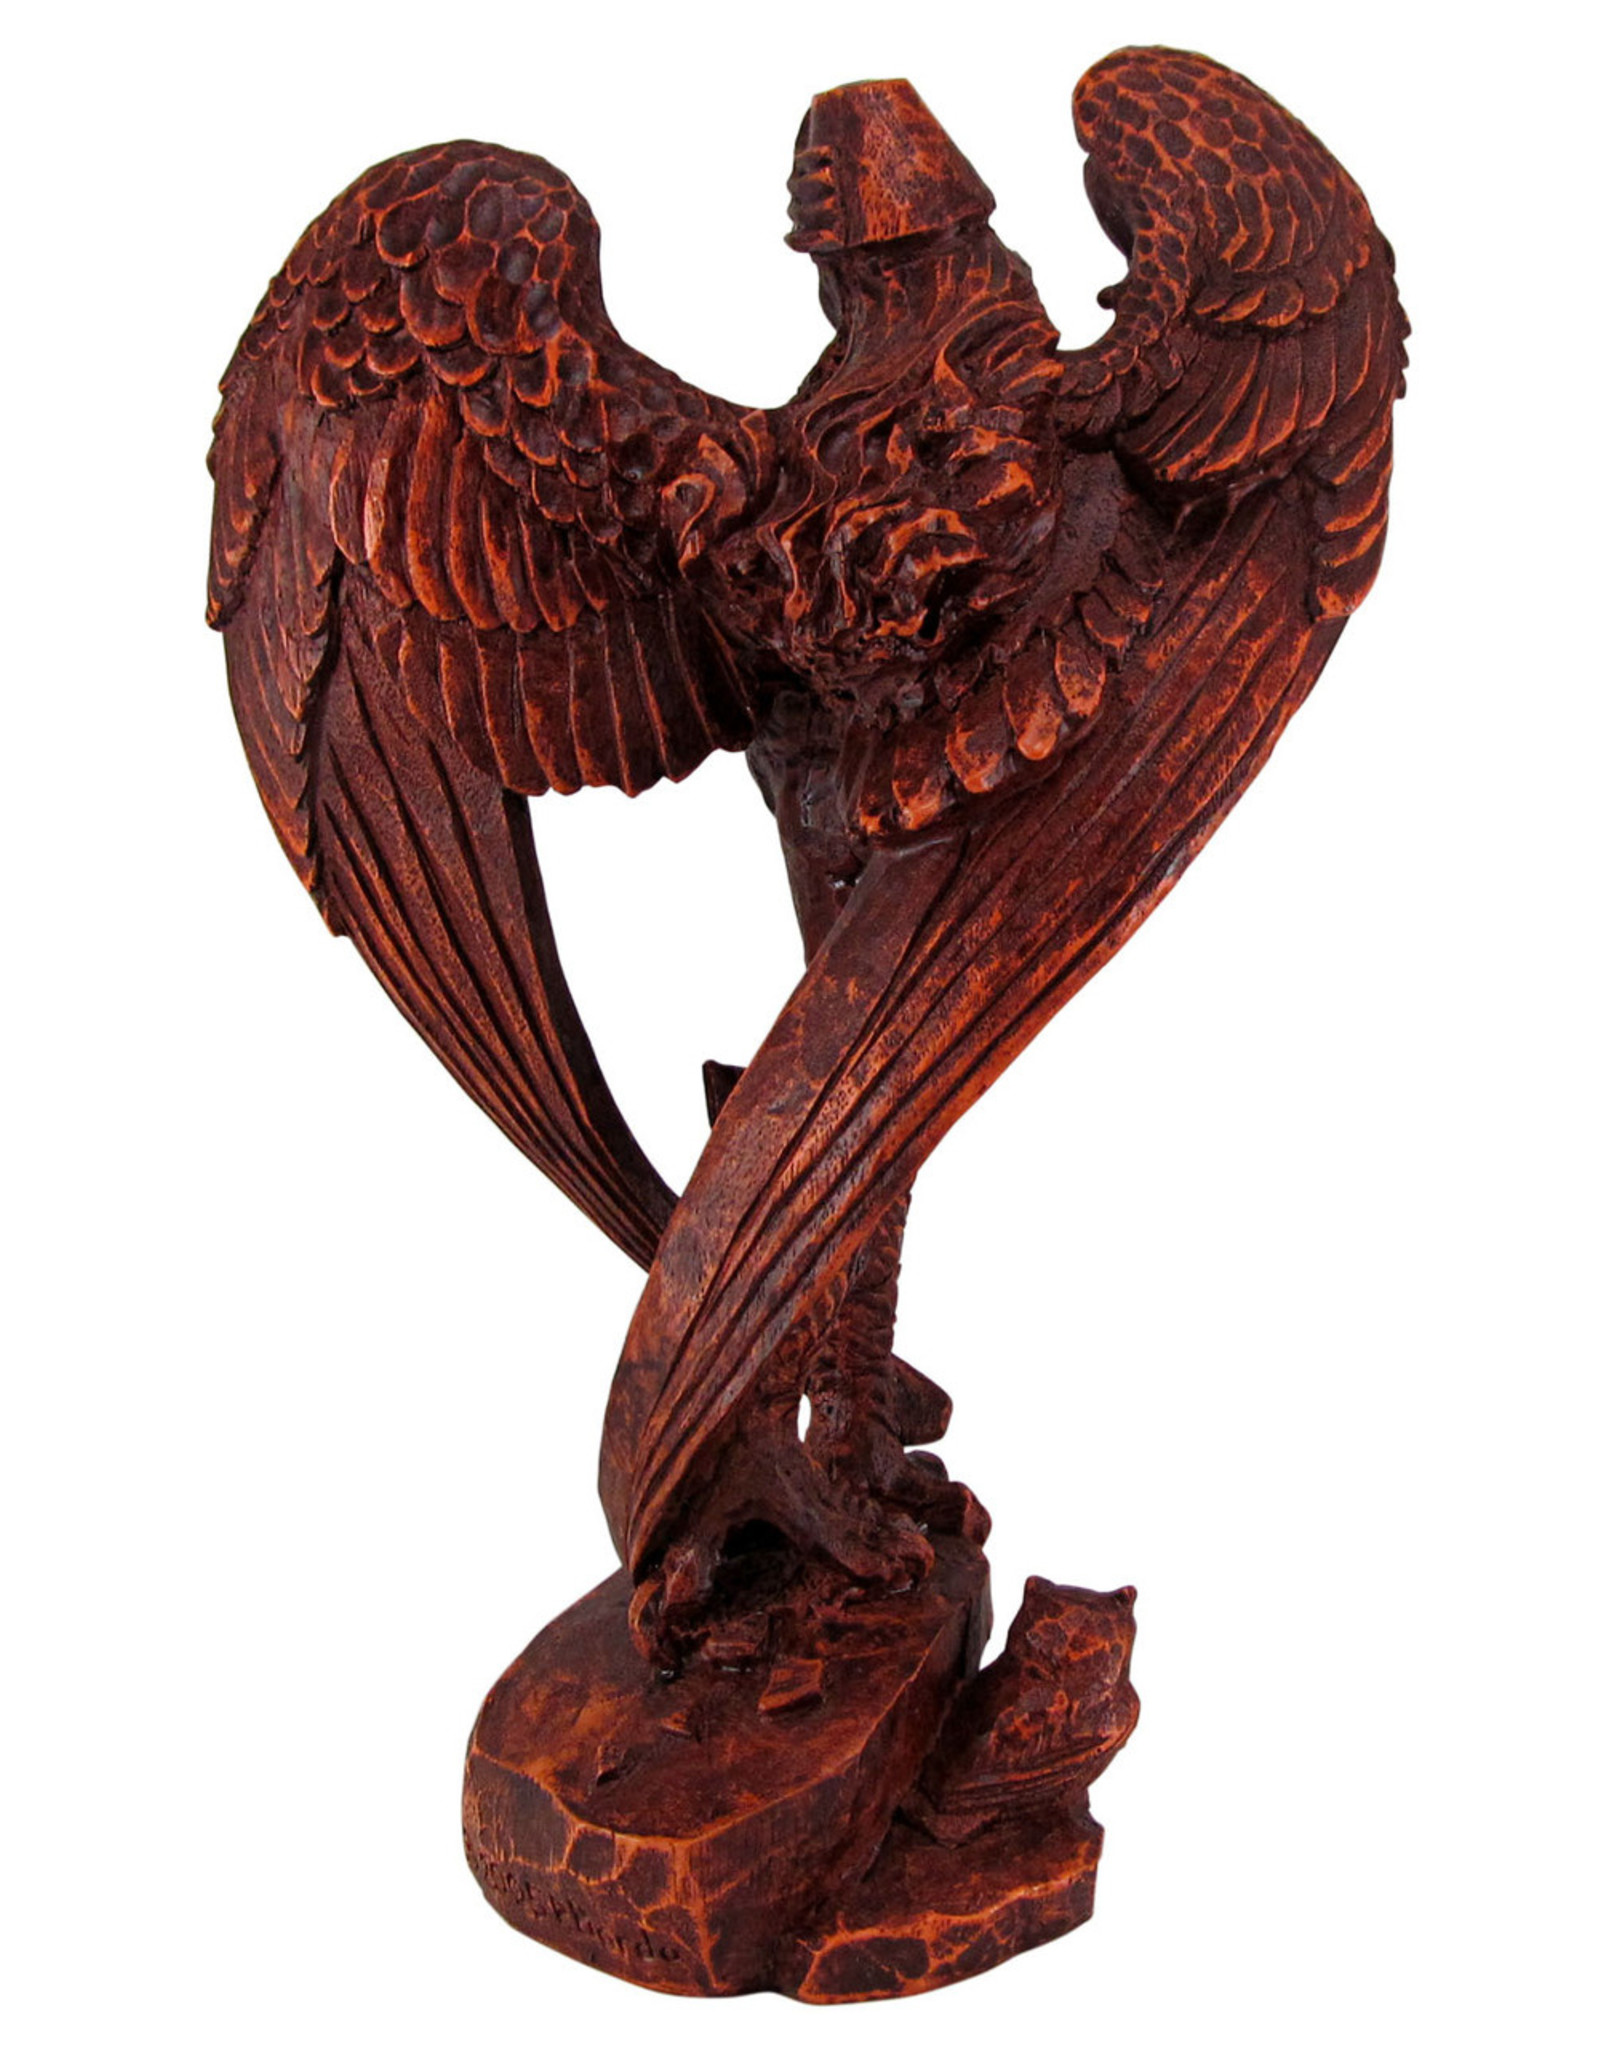 Lilith Statue in Wood Finish